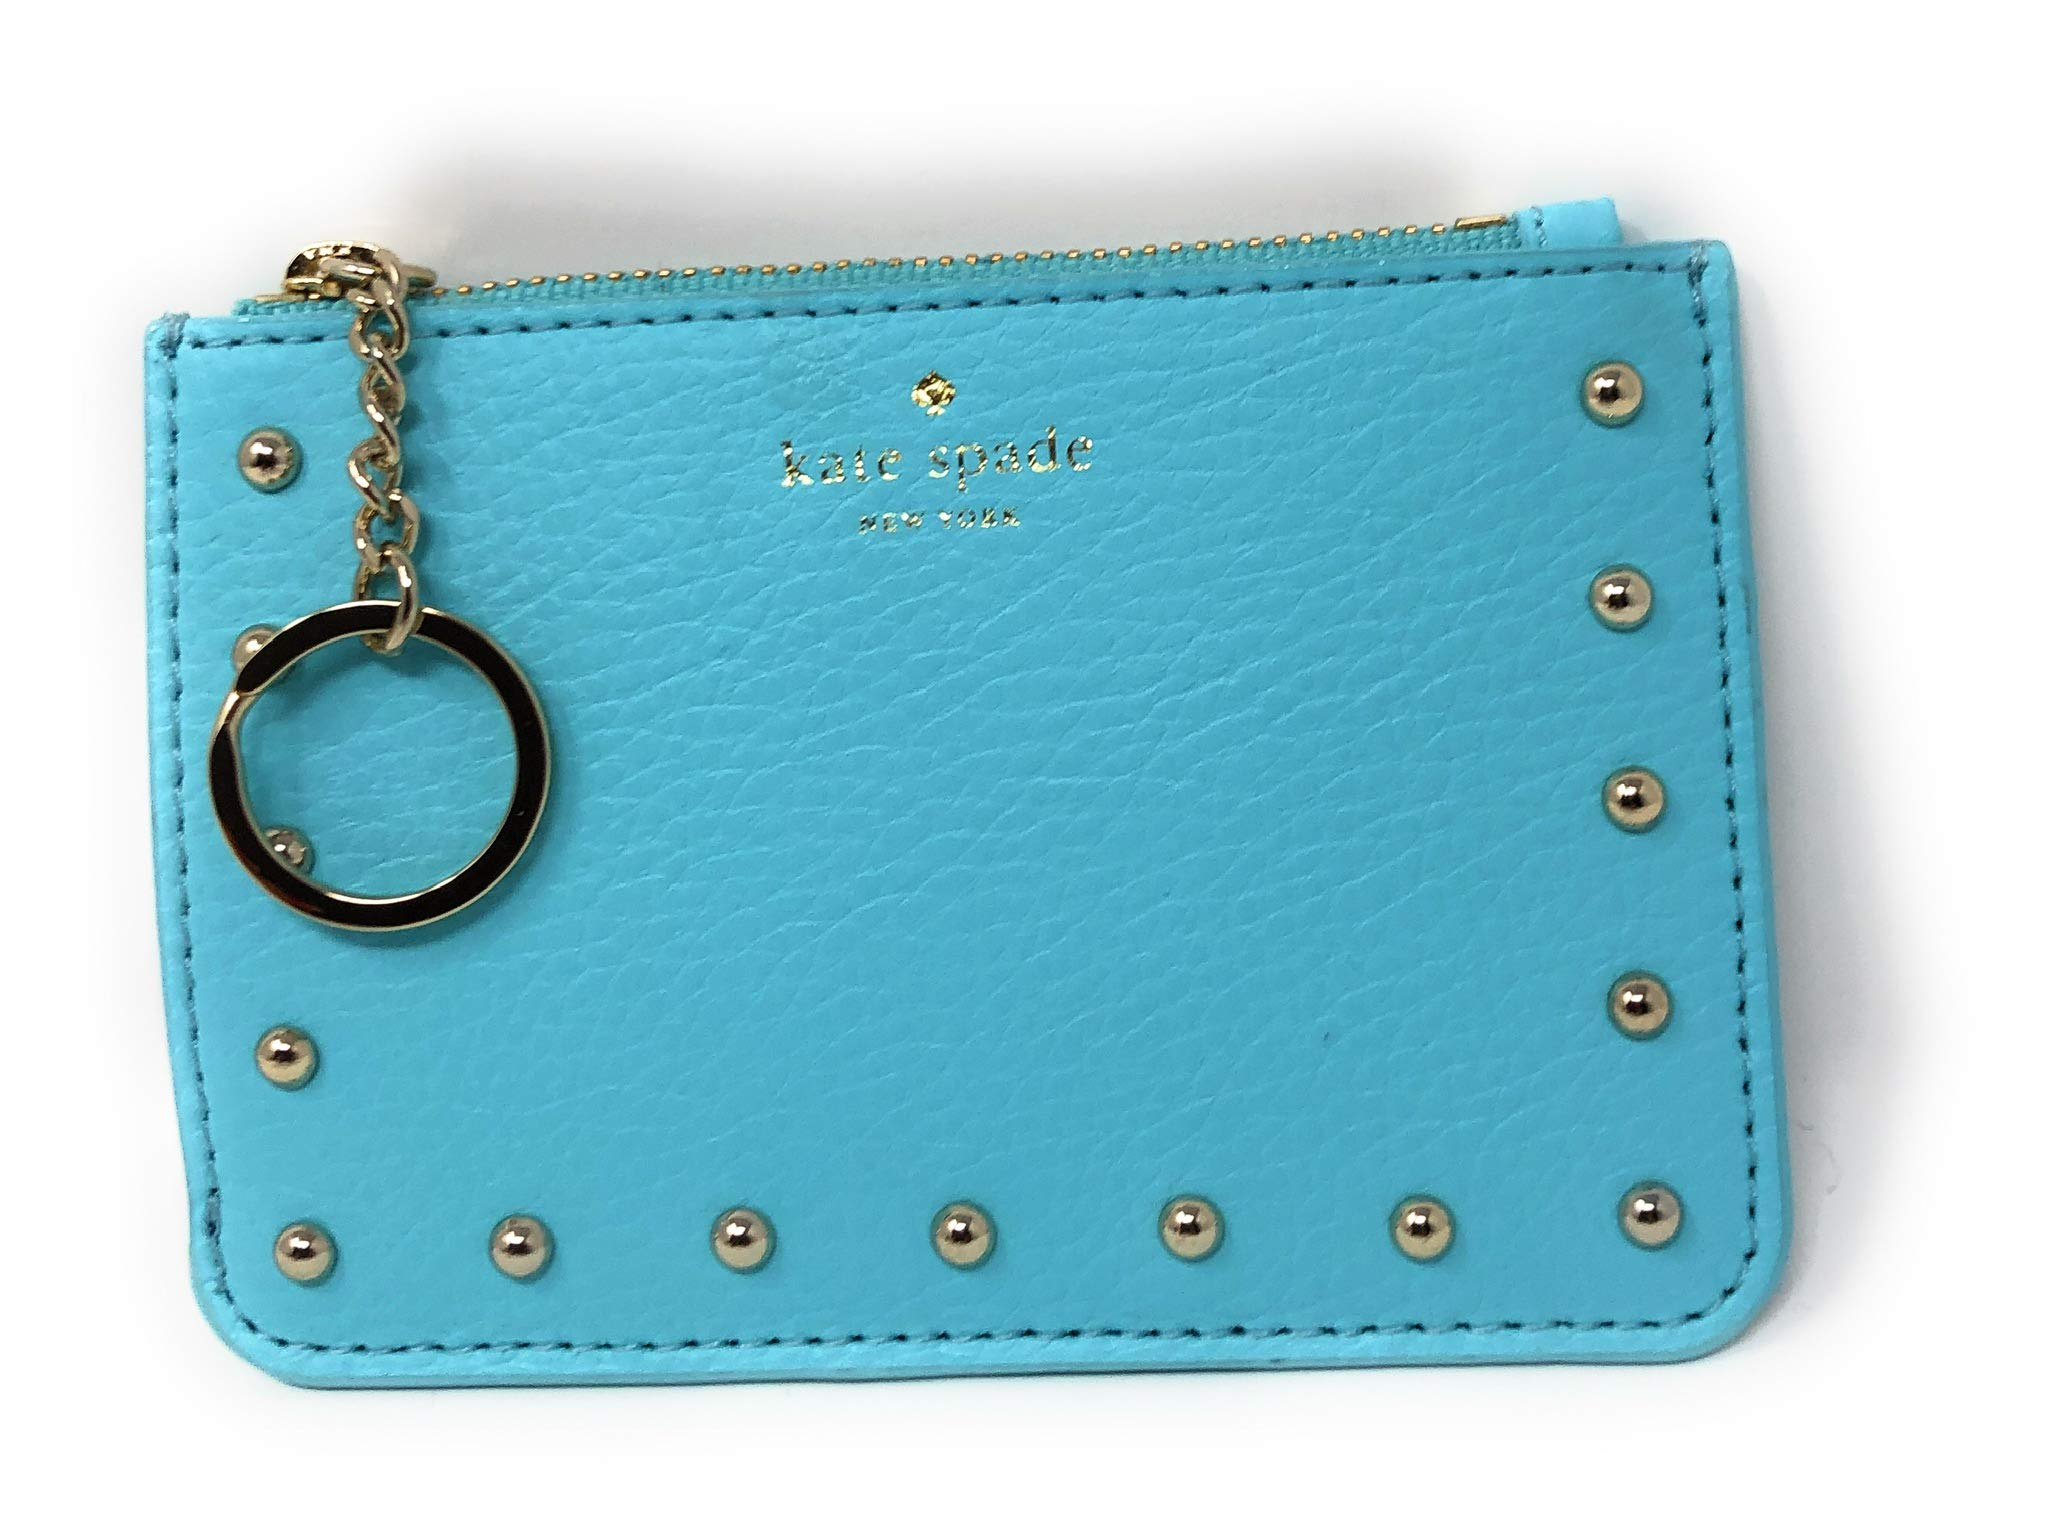 Kate Spade New York Sanders Place Bitsy Card Case Wallet Key Ring